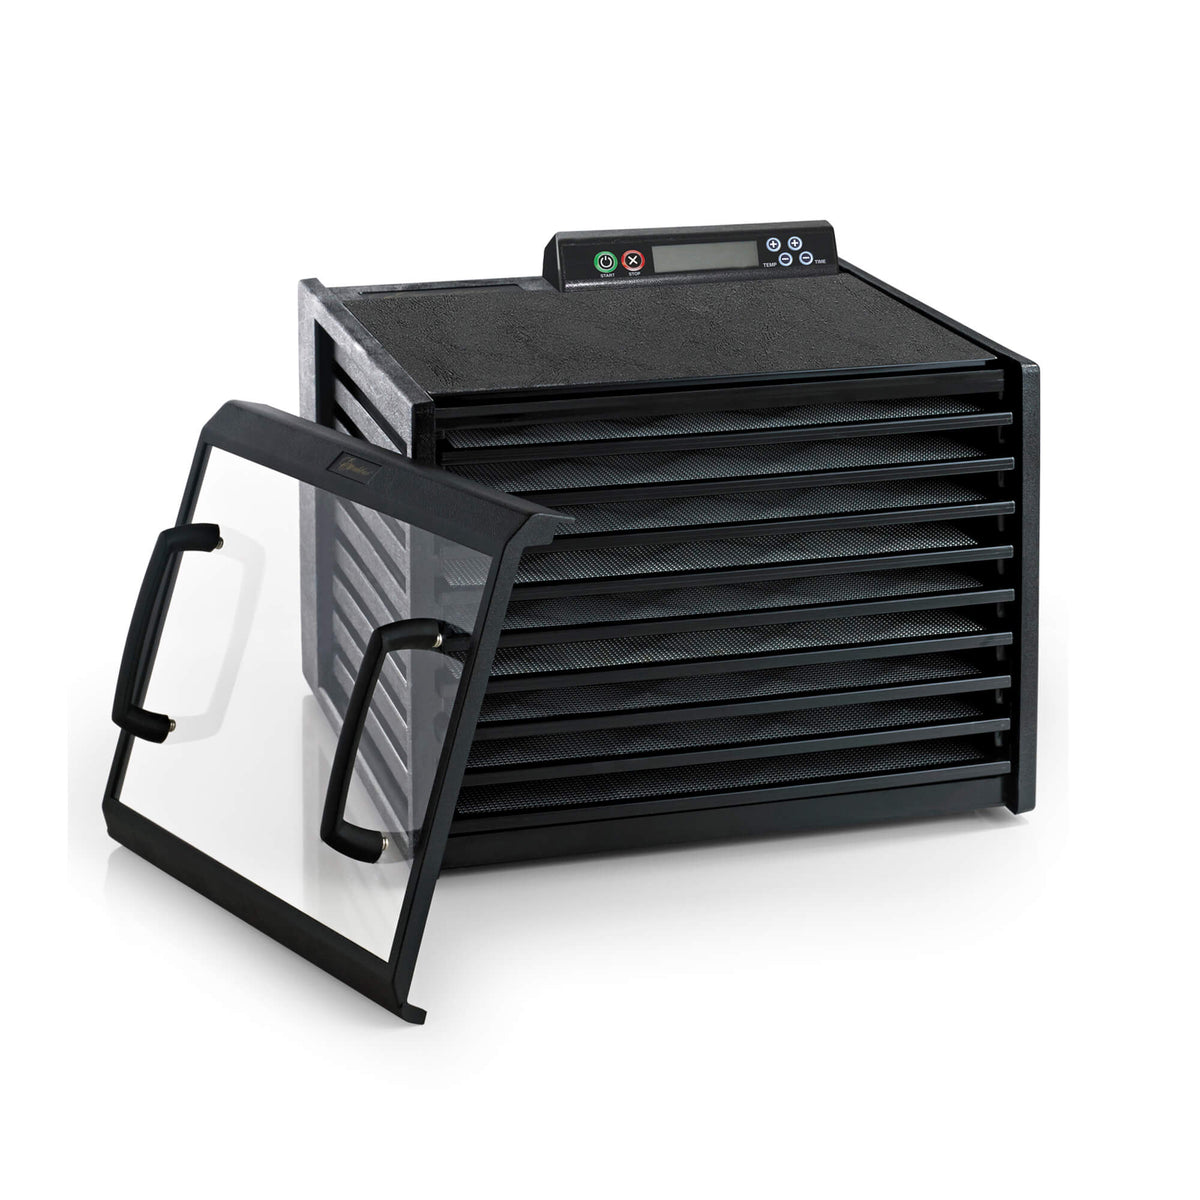 Excalibur 4948CDB 9 tray digital dehydrator with clear door propped to the side and trays in.